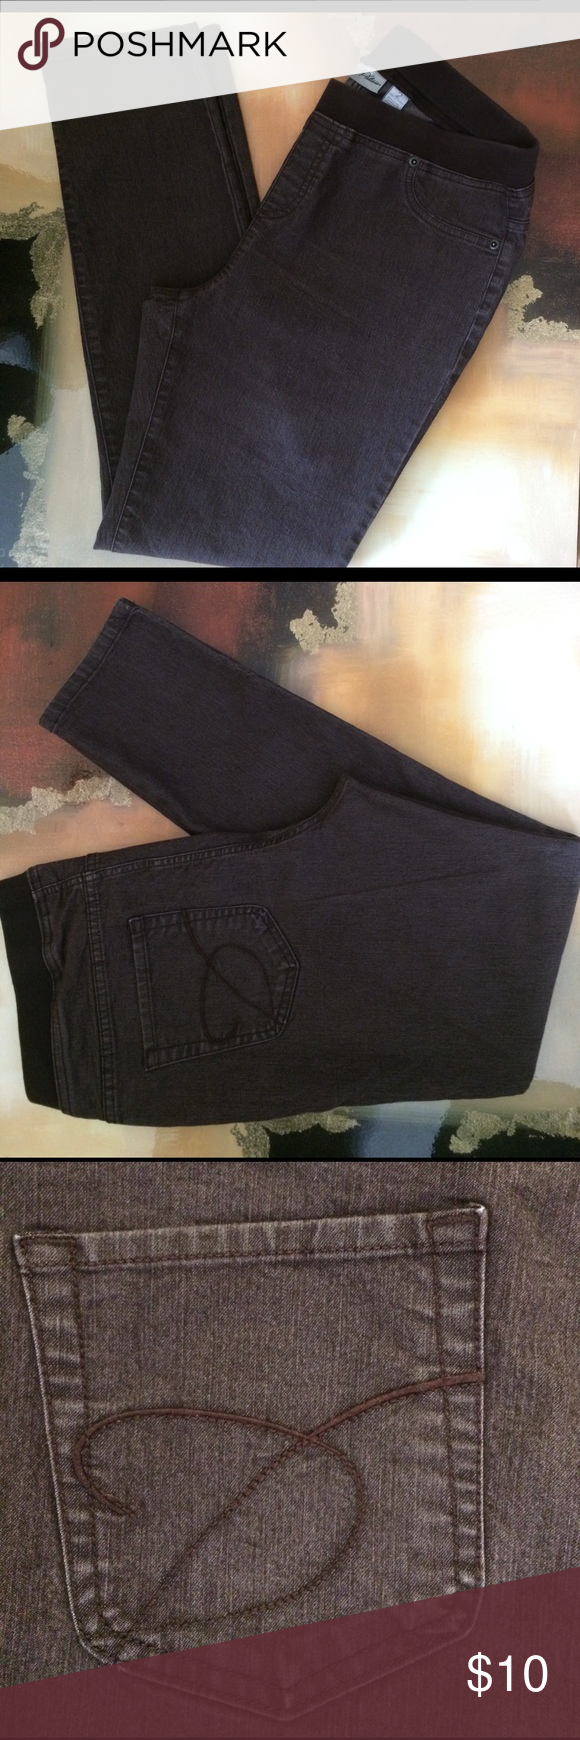 """Chico's Platinum Pull Up Jeans Brown pull up jeans. 1 1/2"""" elastic waist. Front faux pockets and two open back pockets. Cotton, polyester and spandex. 29"""" inseam. Gently worn. Good condition. Chico's size 2 which is a 12. Chico's Jeans Skinny"""